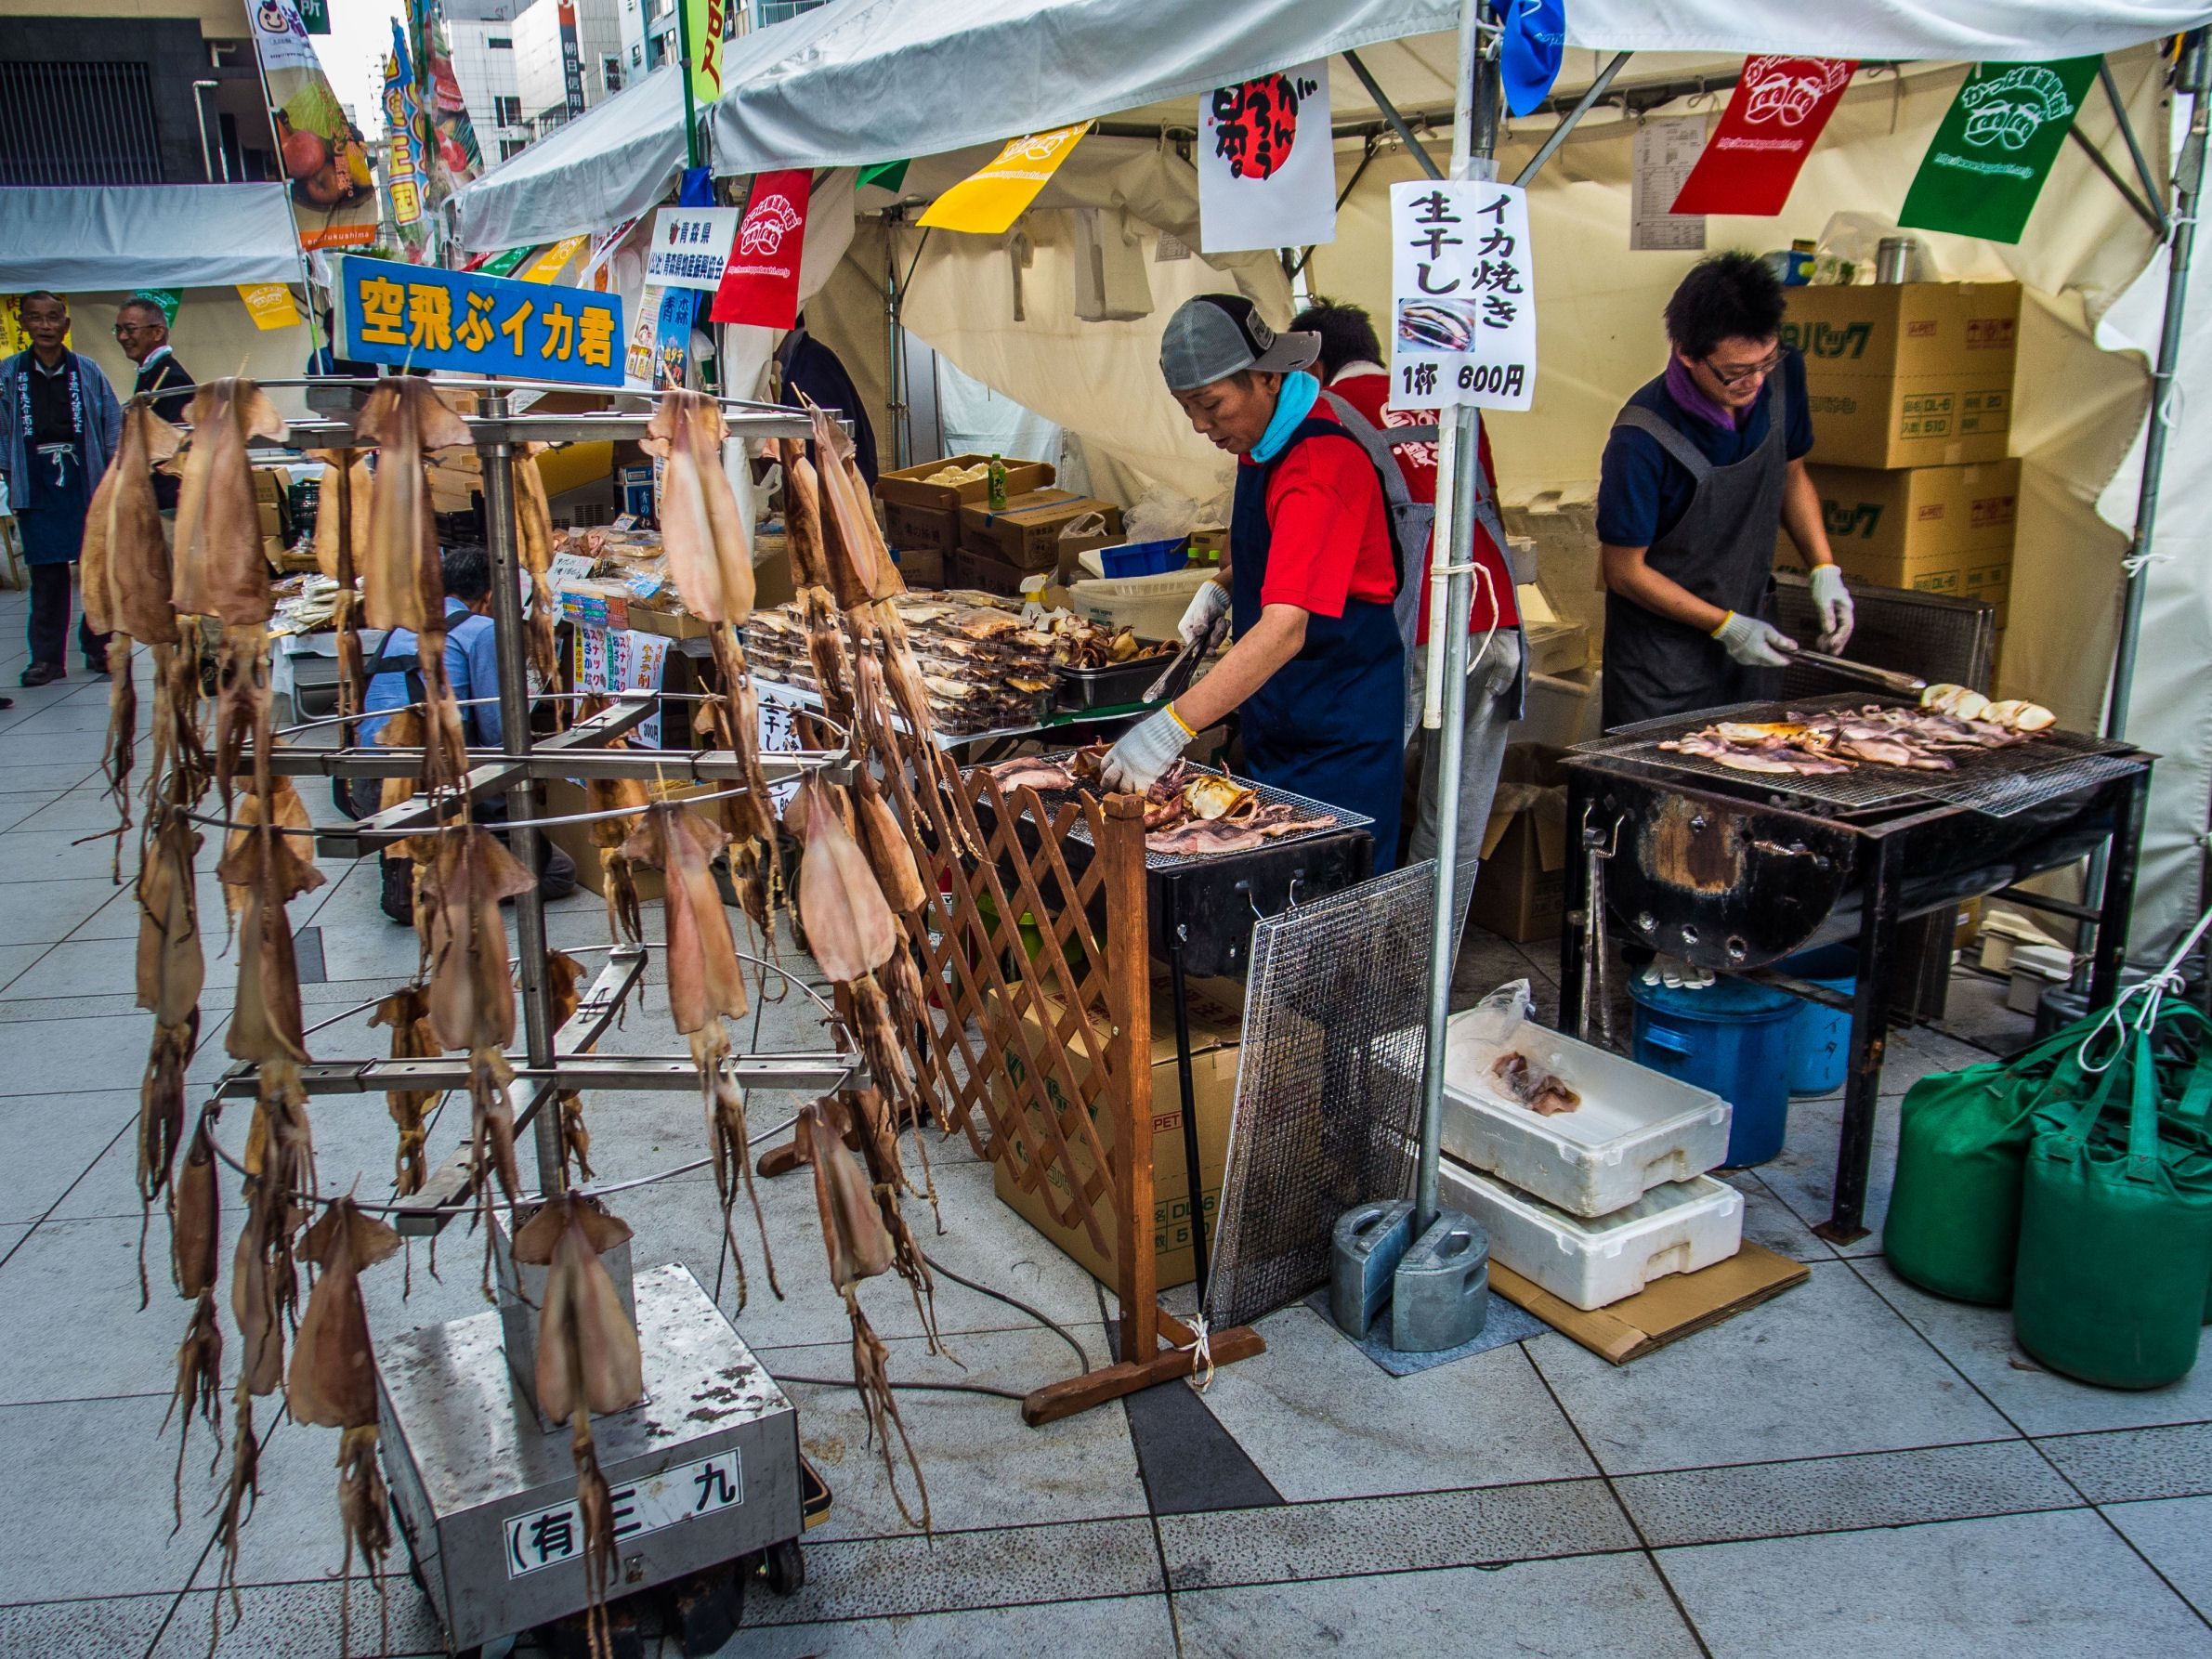 Freshly roasted ika (squid) from Aomori outside Asakusa's (and Taito Ward's) biggest library in Kappabashi -there was a festival/fair there this last weekend... #Asakusa, #Kappabashi, #Aomori, #ika, #squid October, 12 2015 © 2015 Grigoris A. Miliaresis